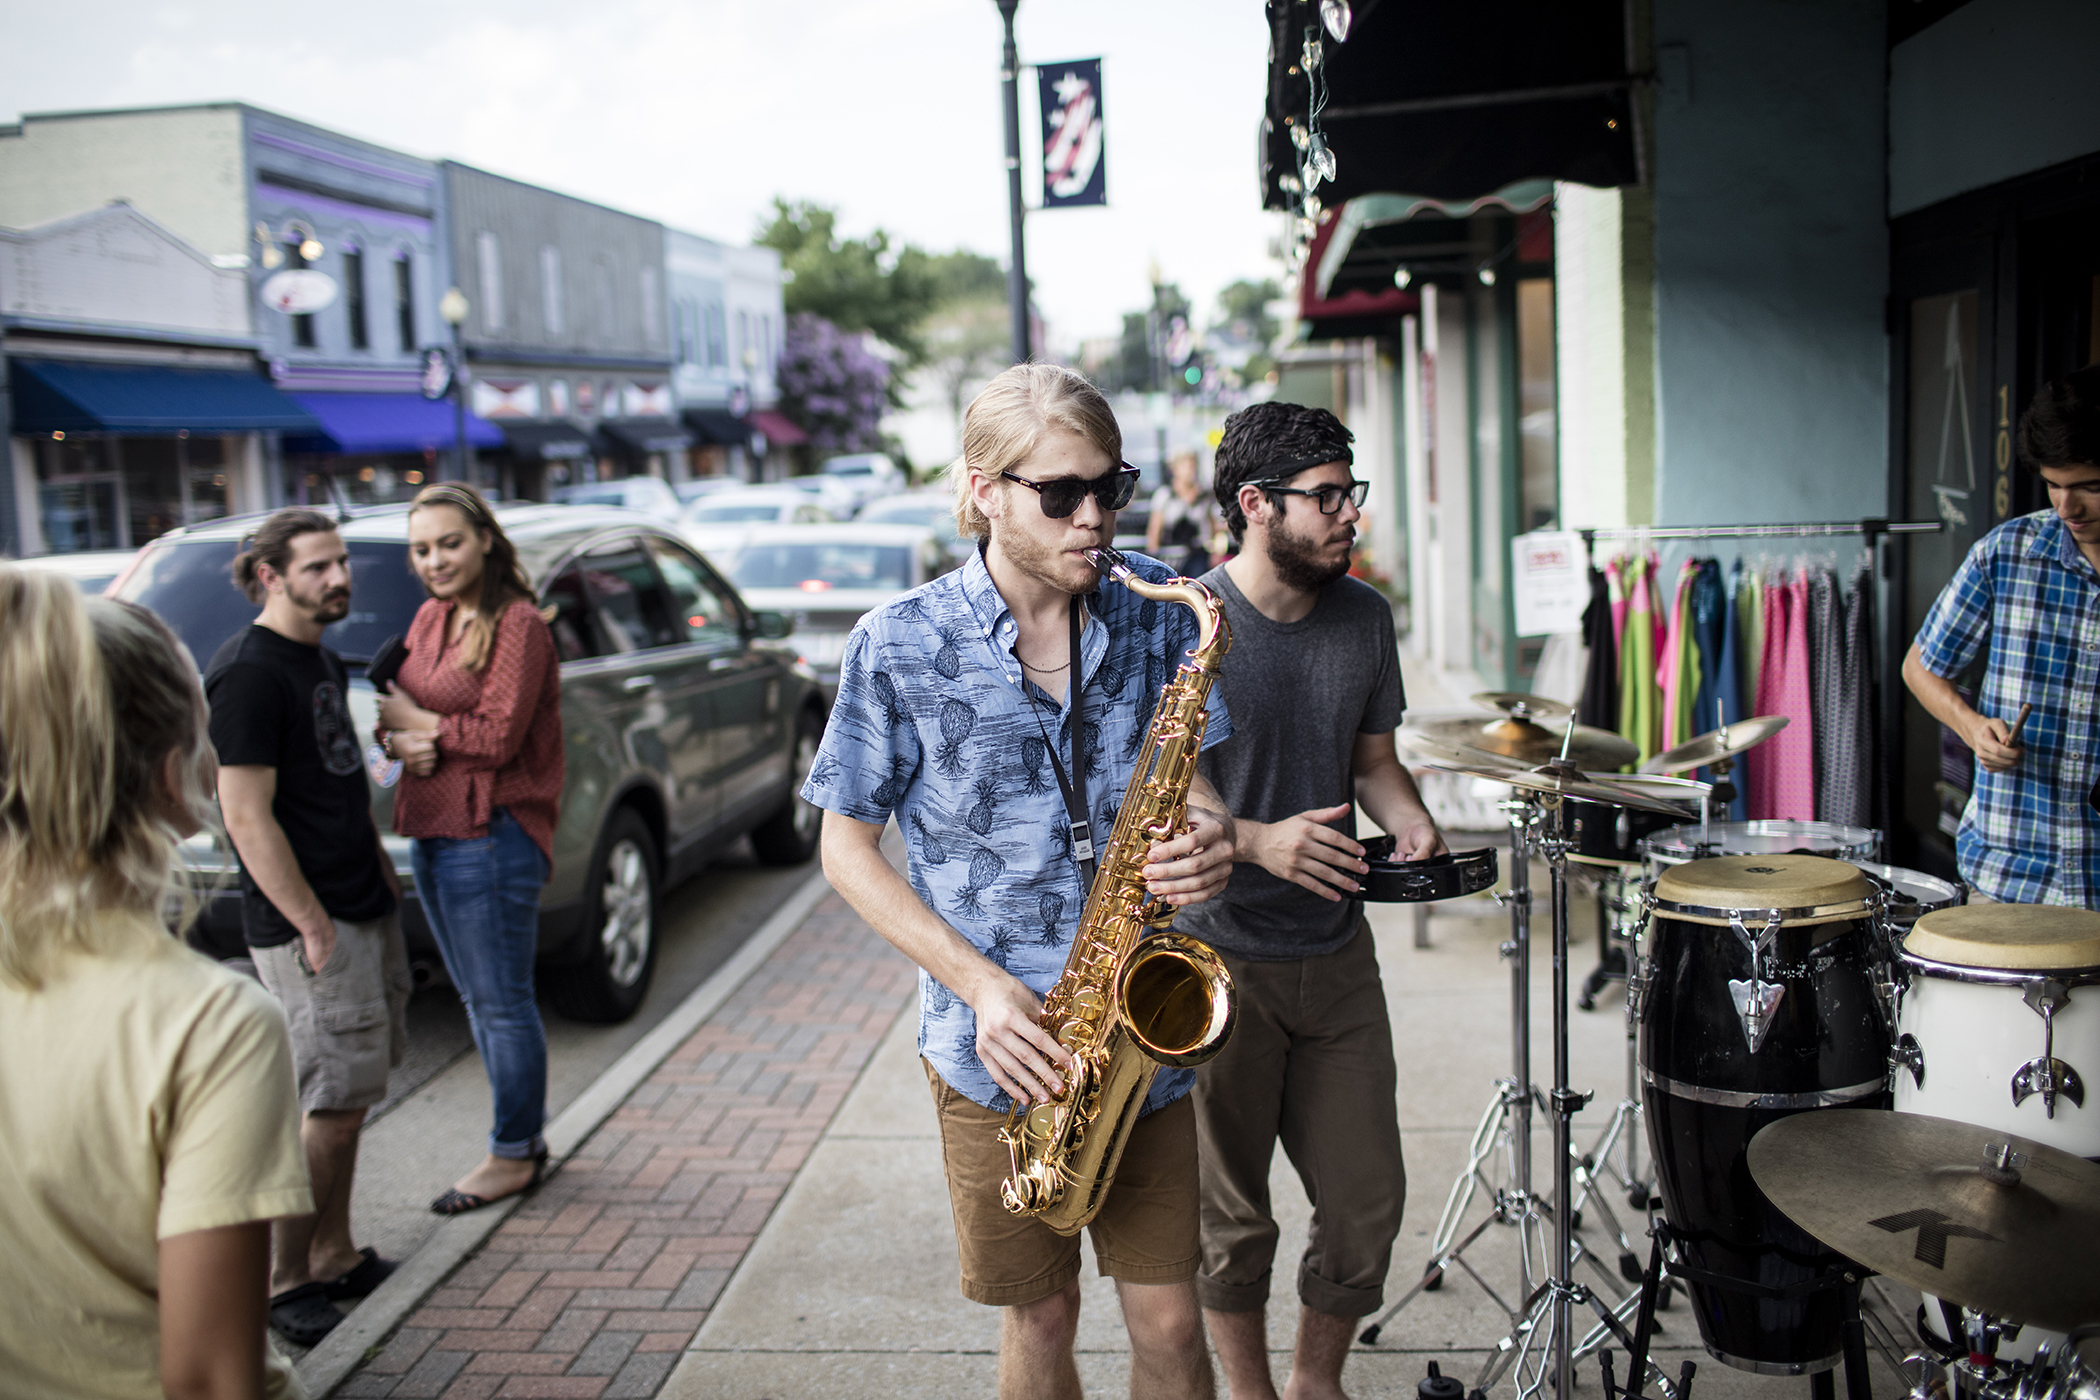 The GrayScale Whale band plays along Salem Street in downtown Apex, NC